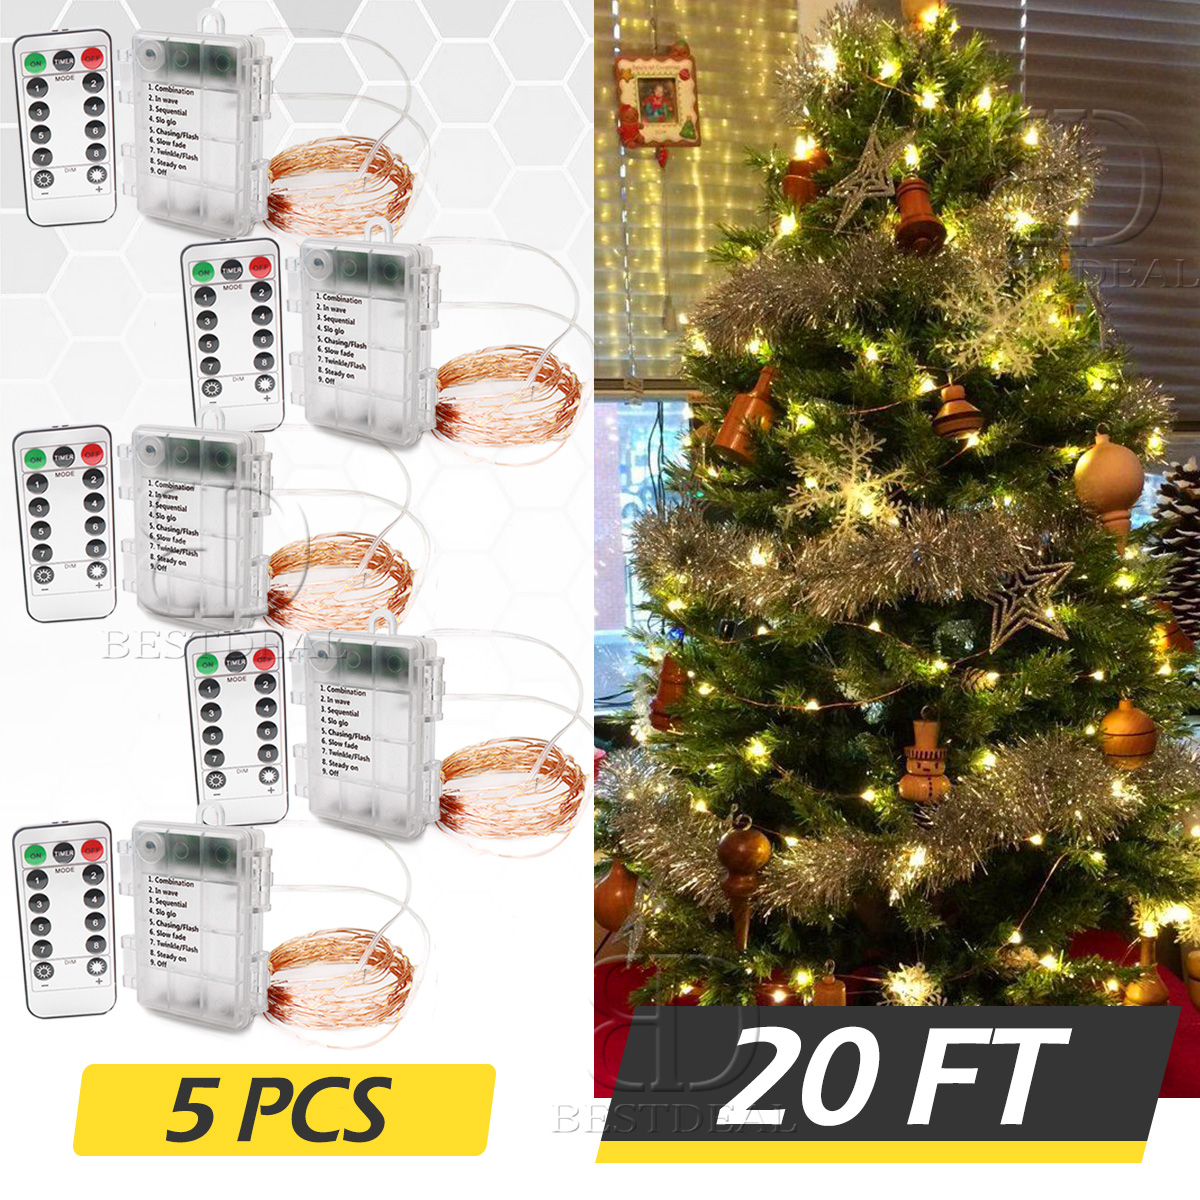 20 Ft Christmas Tree.Details About 5x 20ft Fairy String Led Rope Lights Gift Xmas Tree Party Wedding Decor Lights